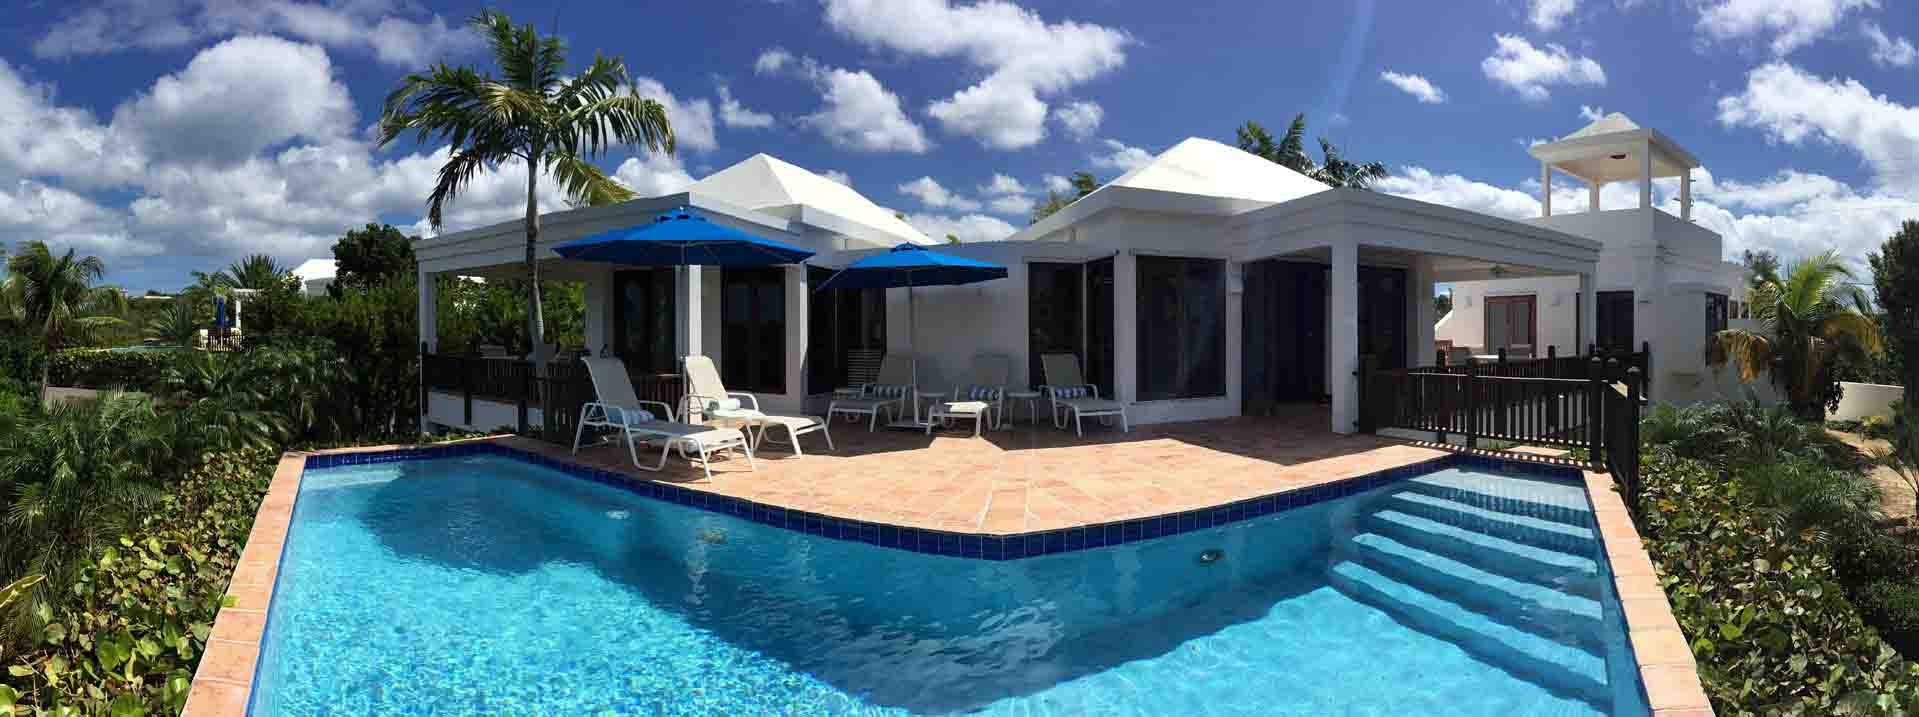 3 bedroom anguilla vacation rental